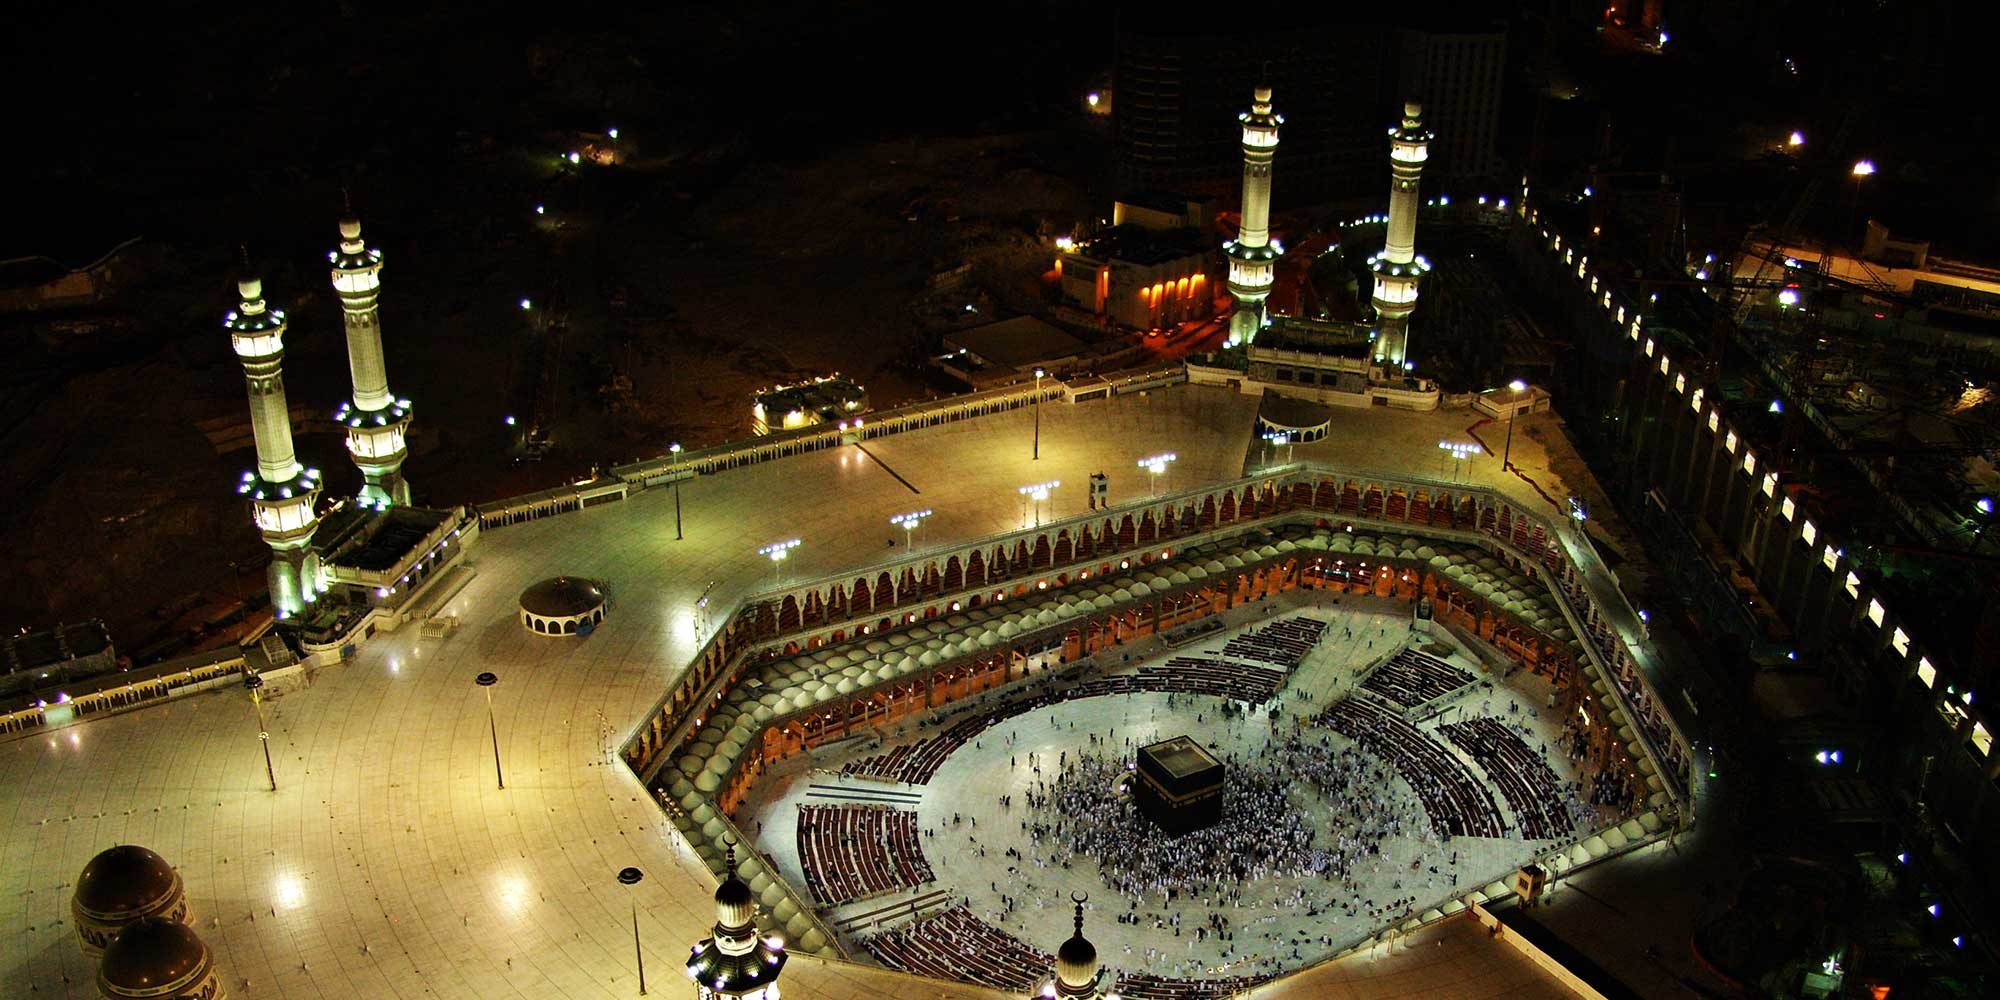 hajj and umrah trips